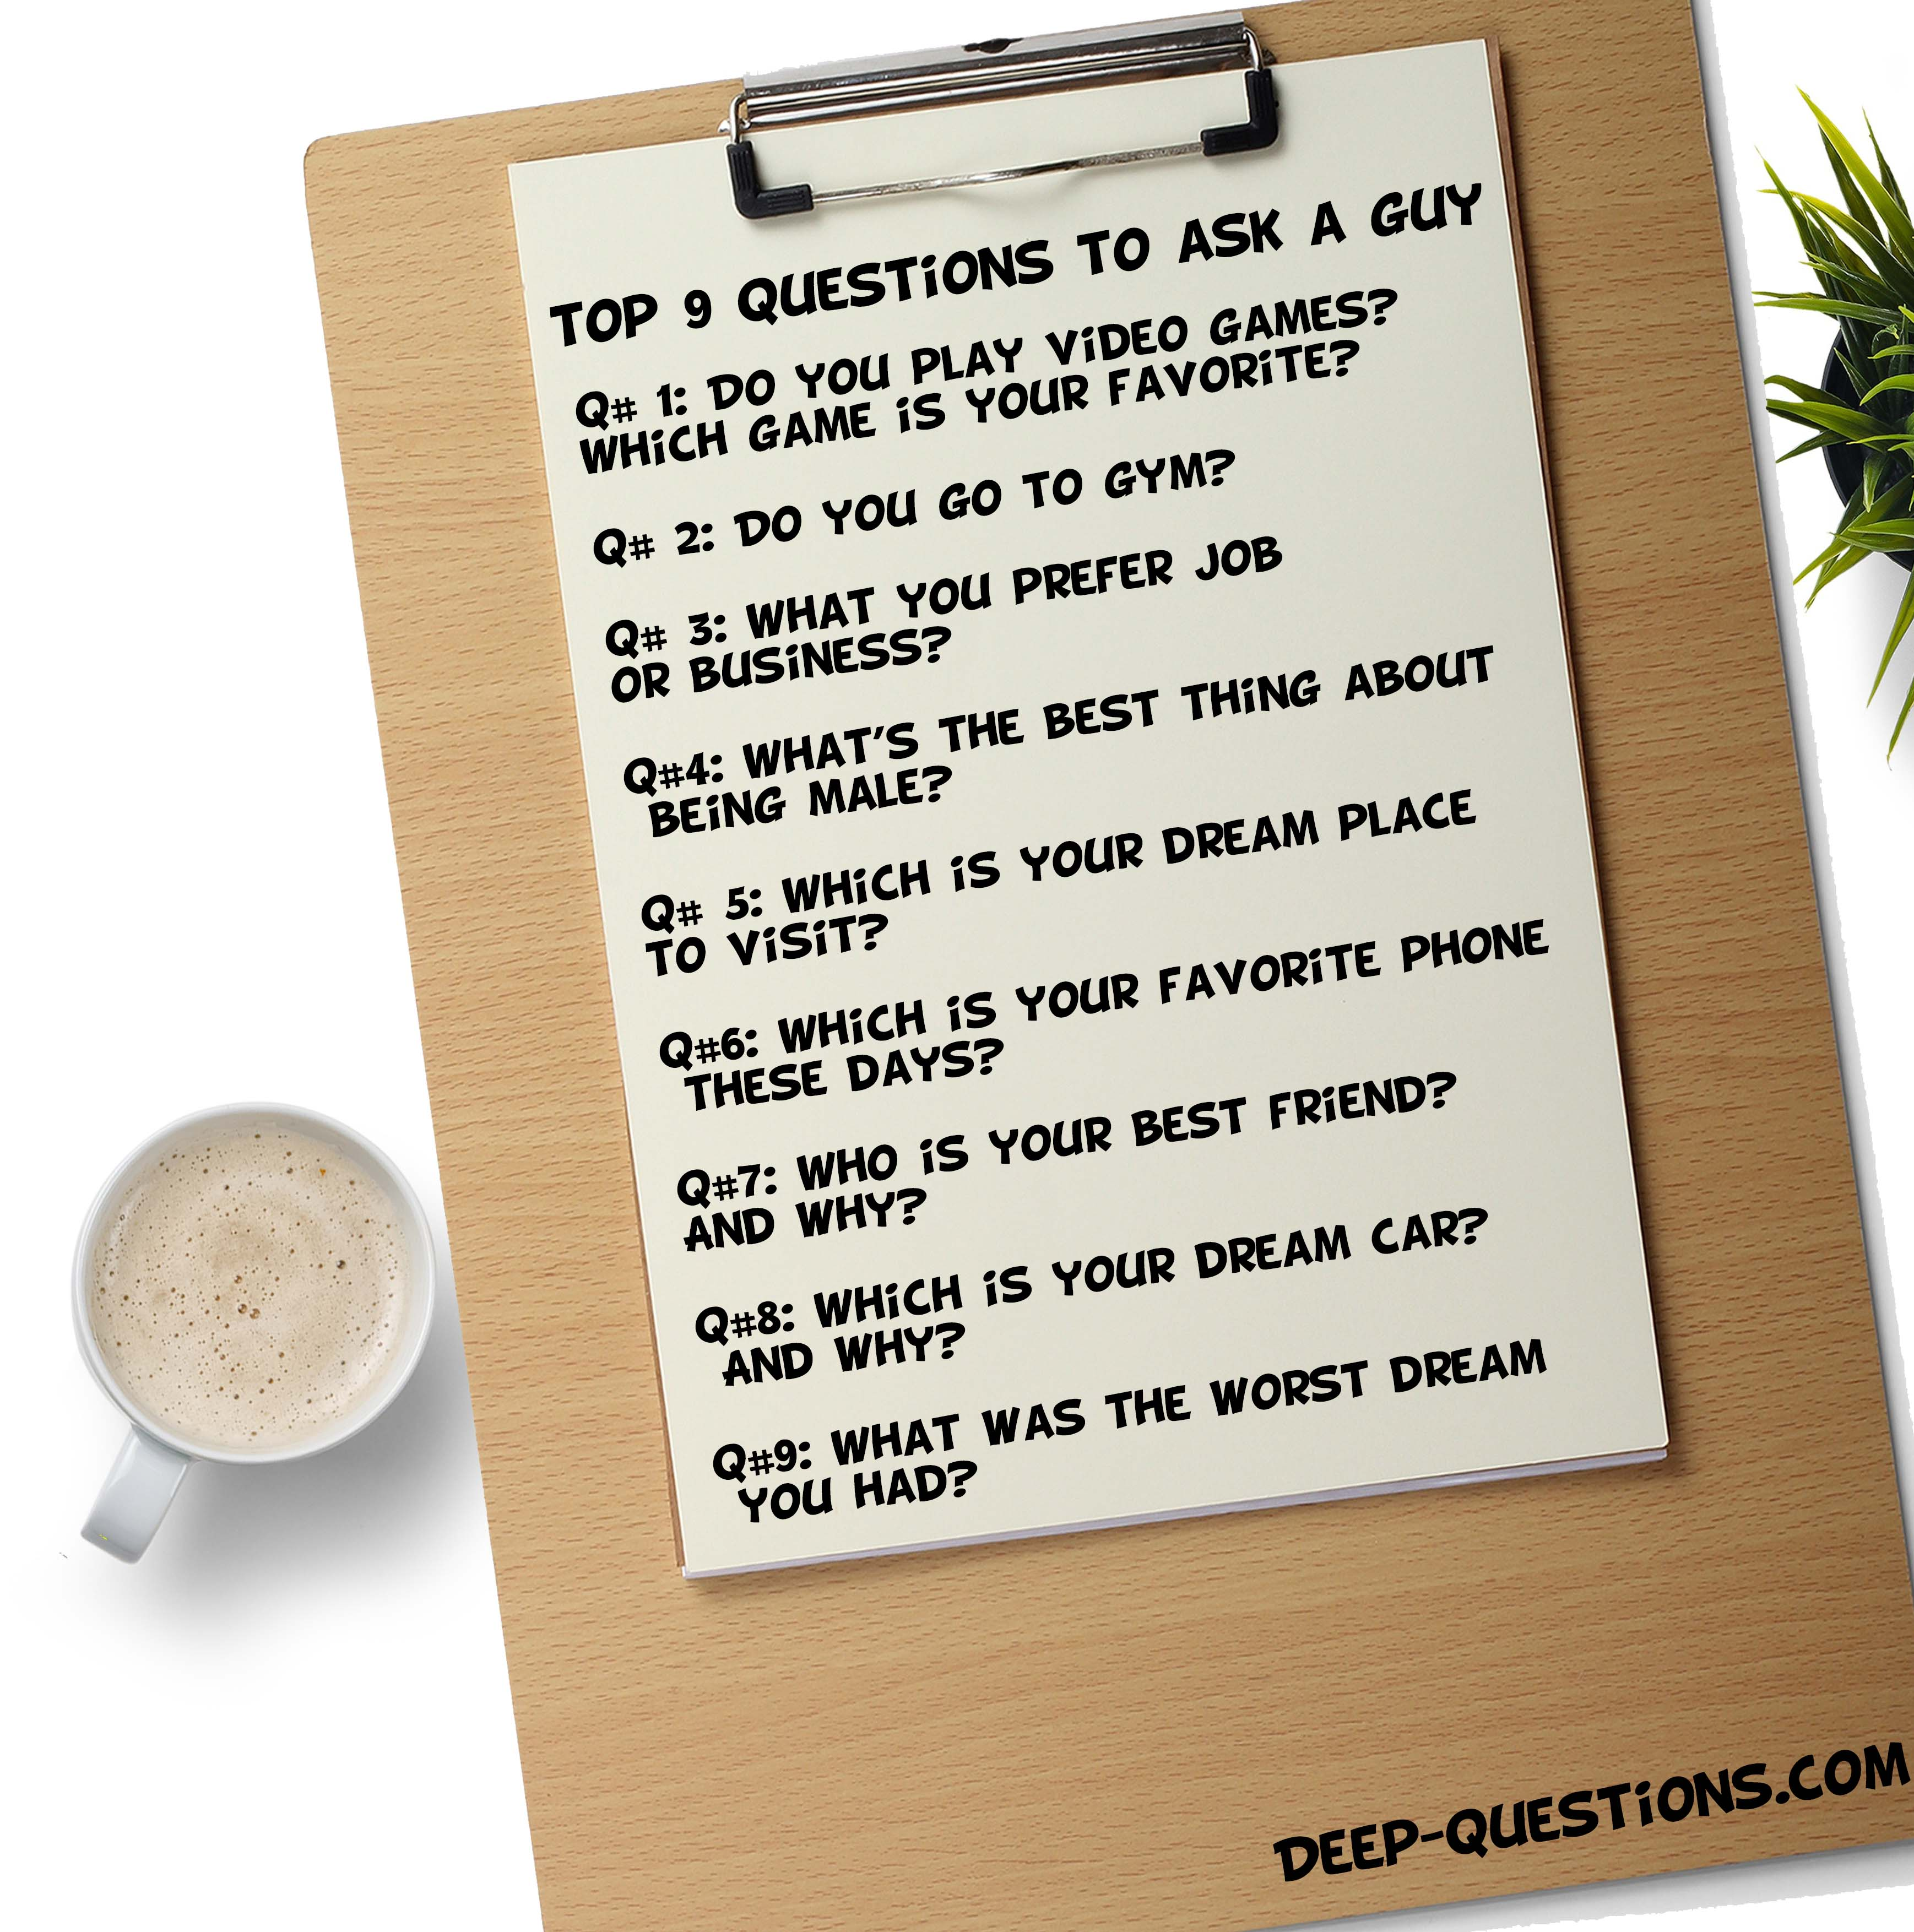 LAKEISHA: Good interesting questions to ask a guy